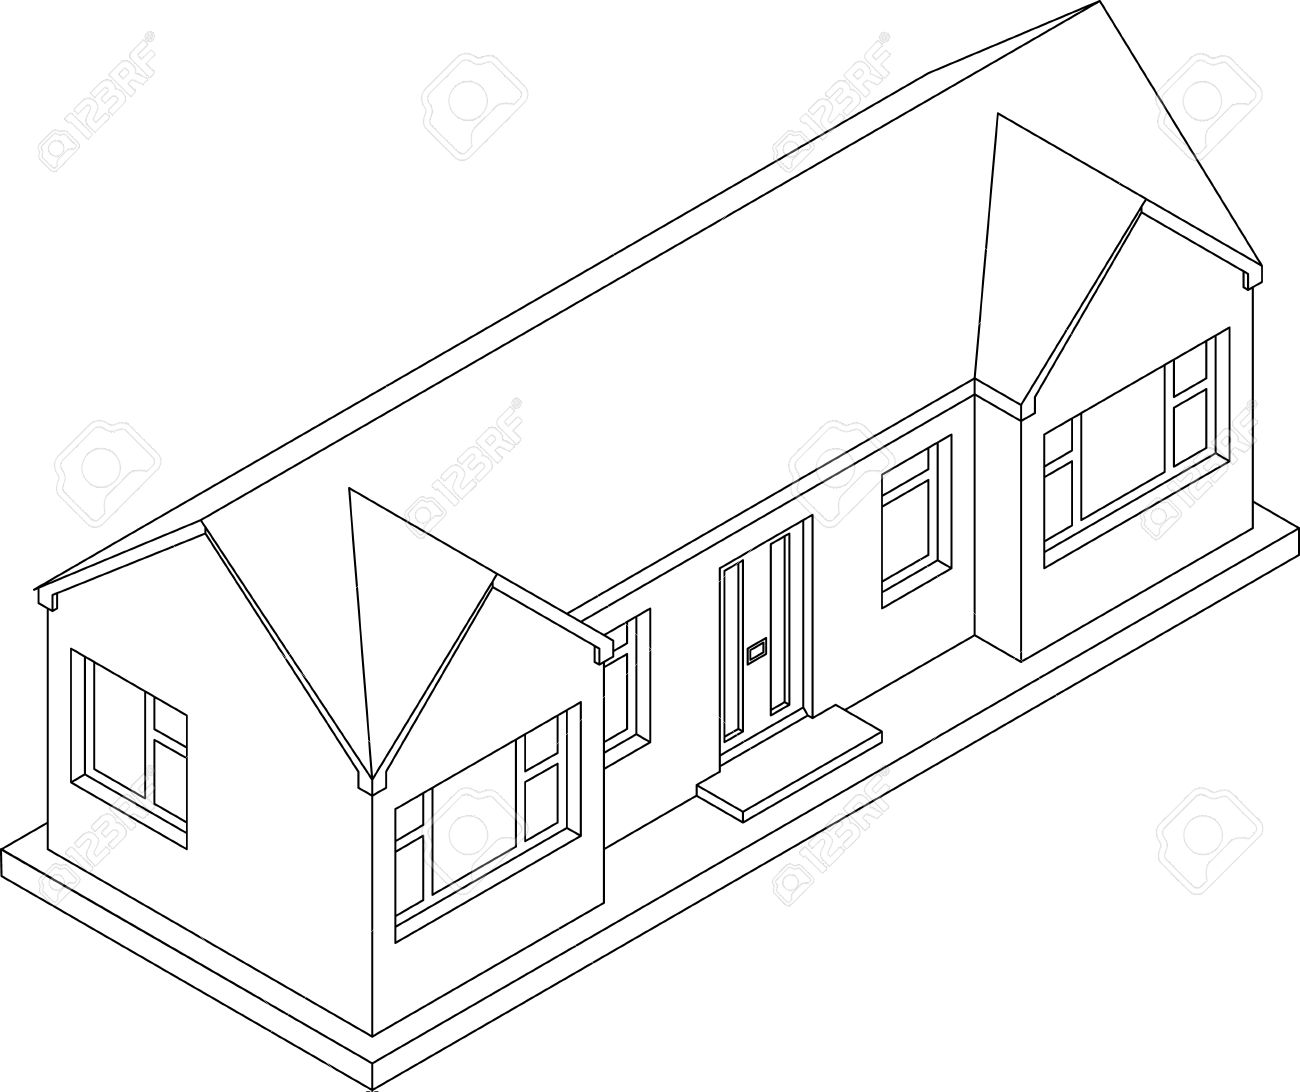 3d Isometric Line Drawing Of A Double Fronted Single Story House Bungalow  Stock Vector   23857959